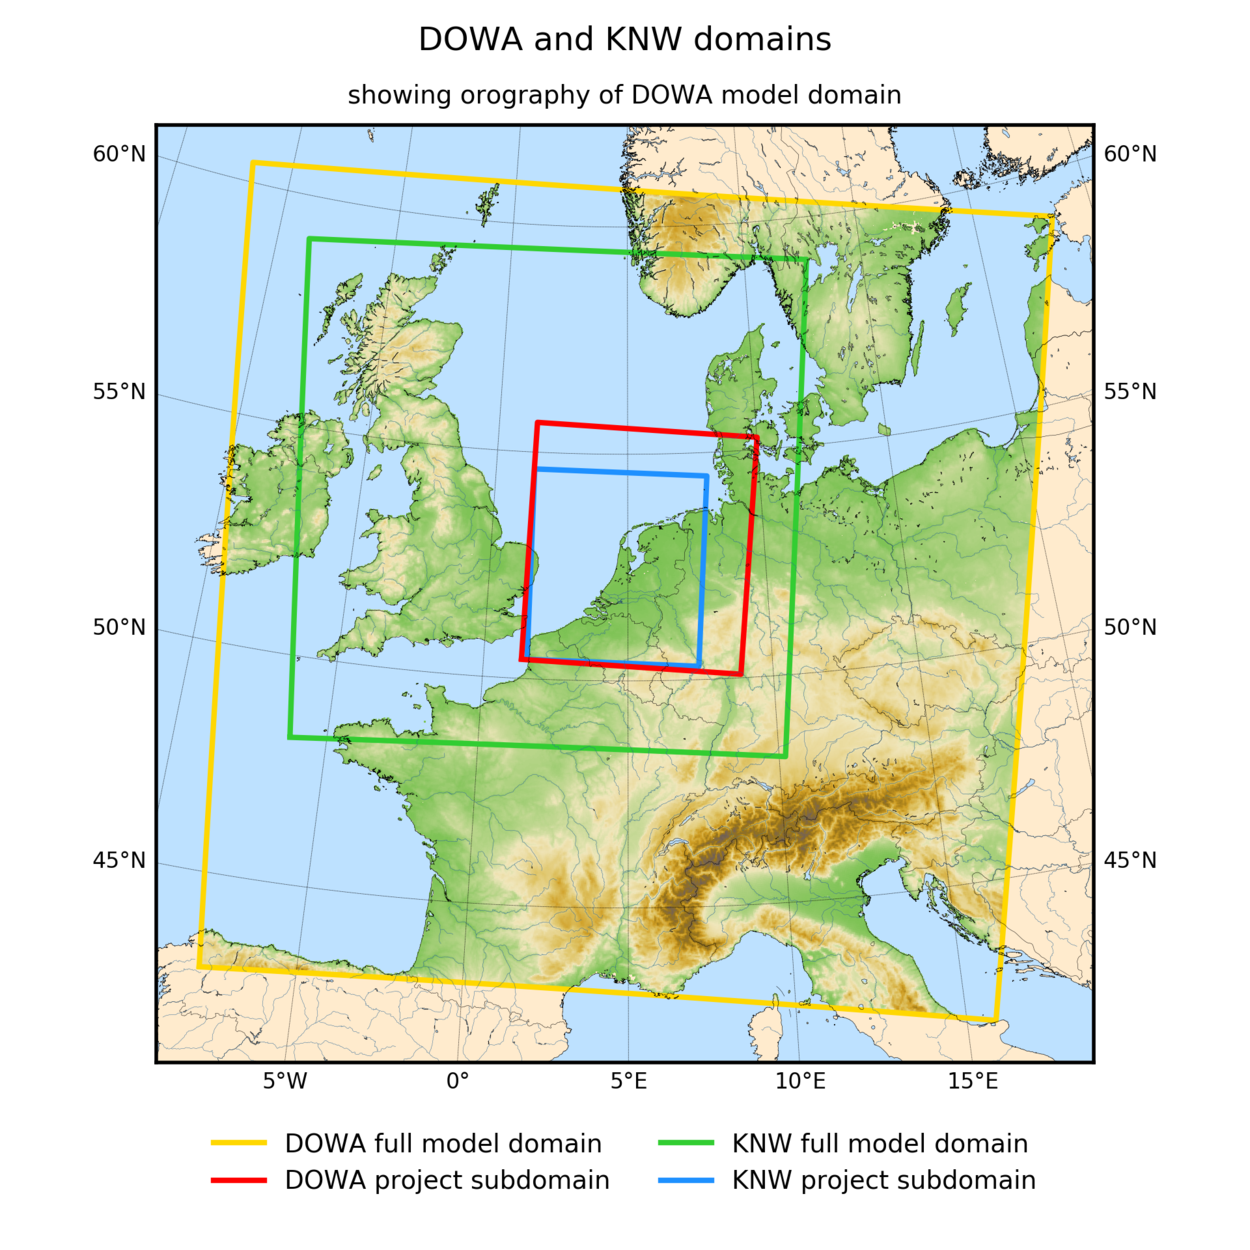 DOWA_and_KNW_domains_and_orography_wide